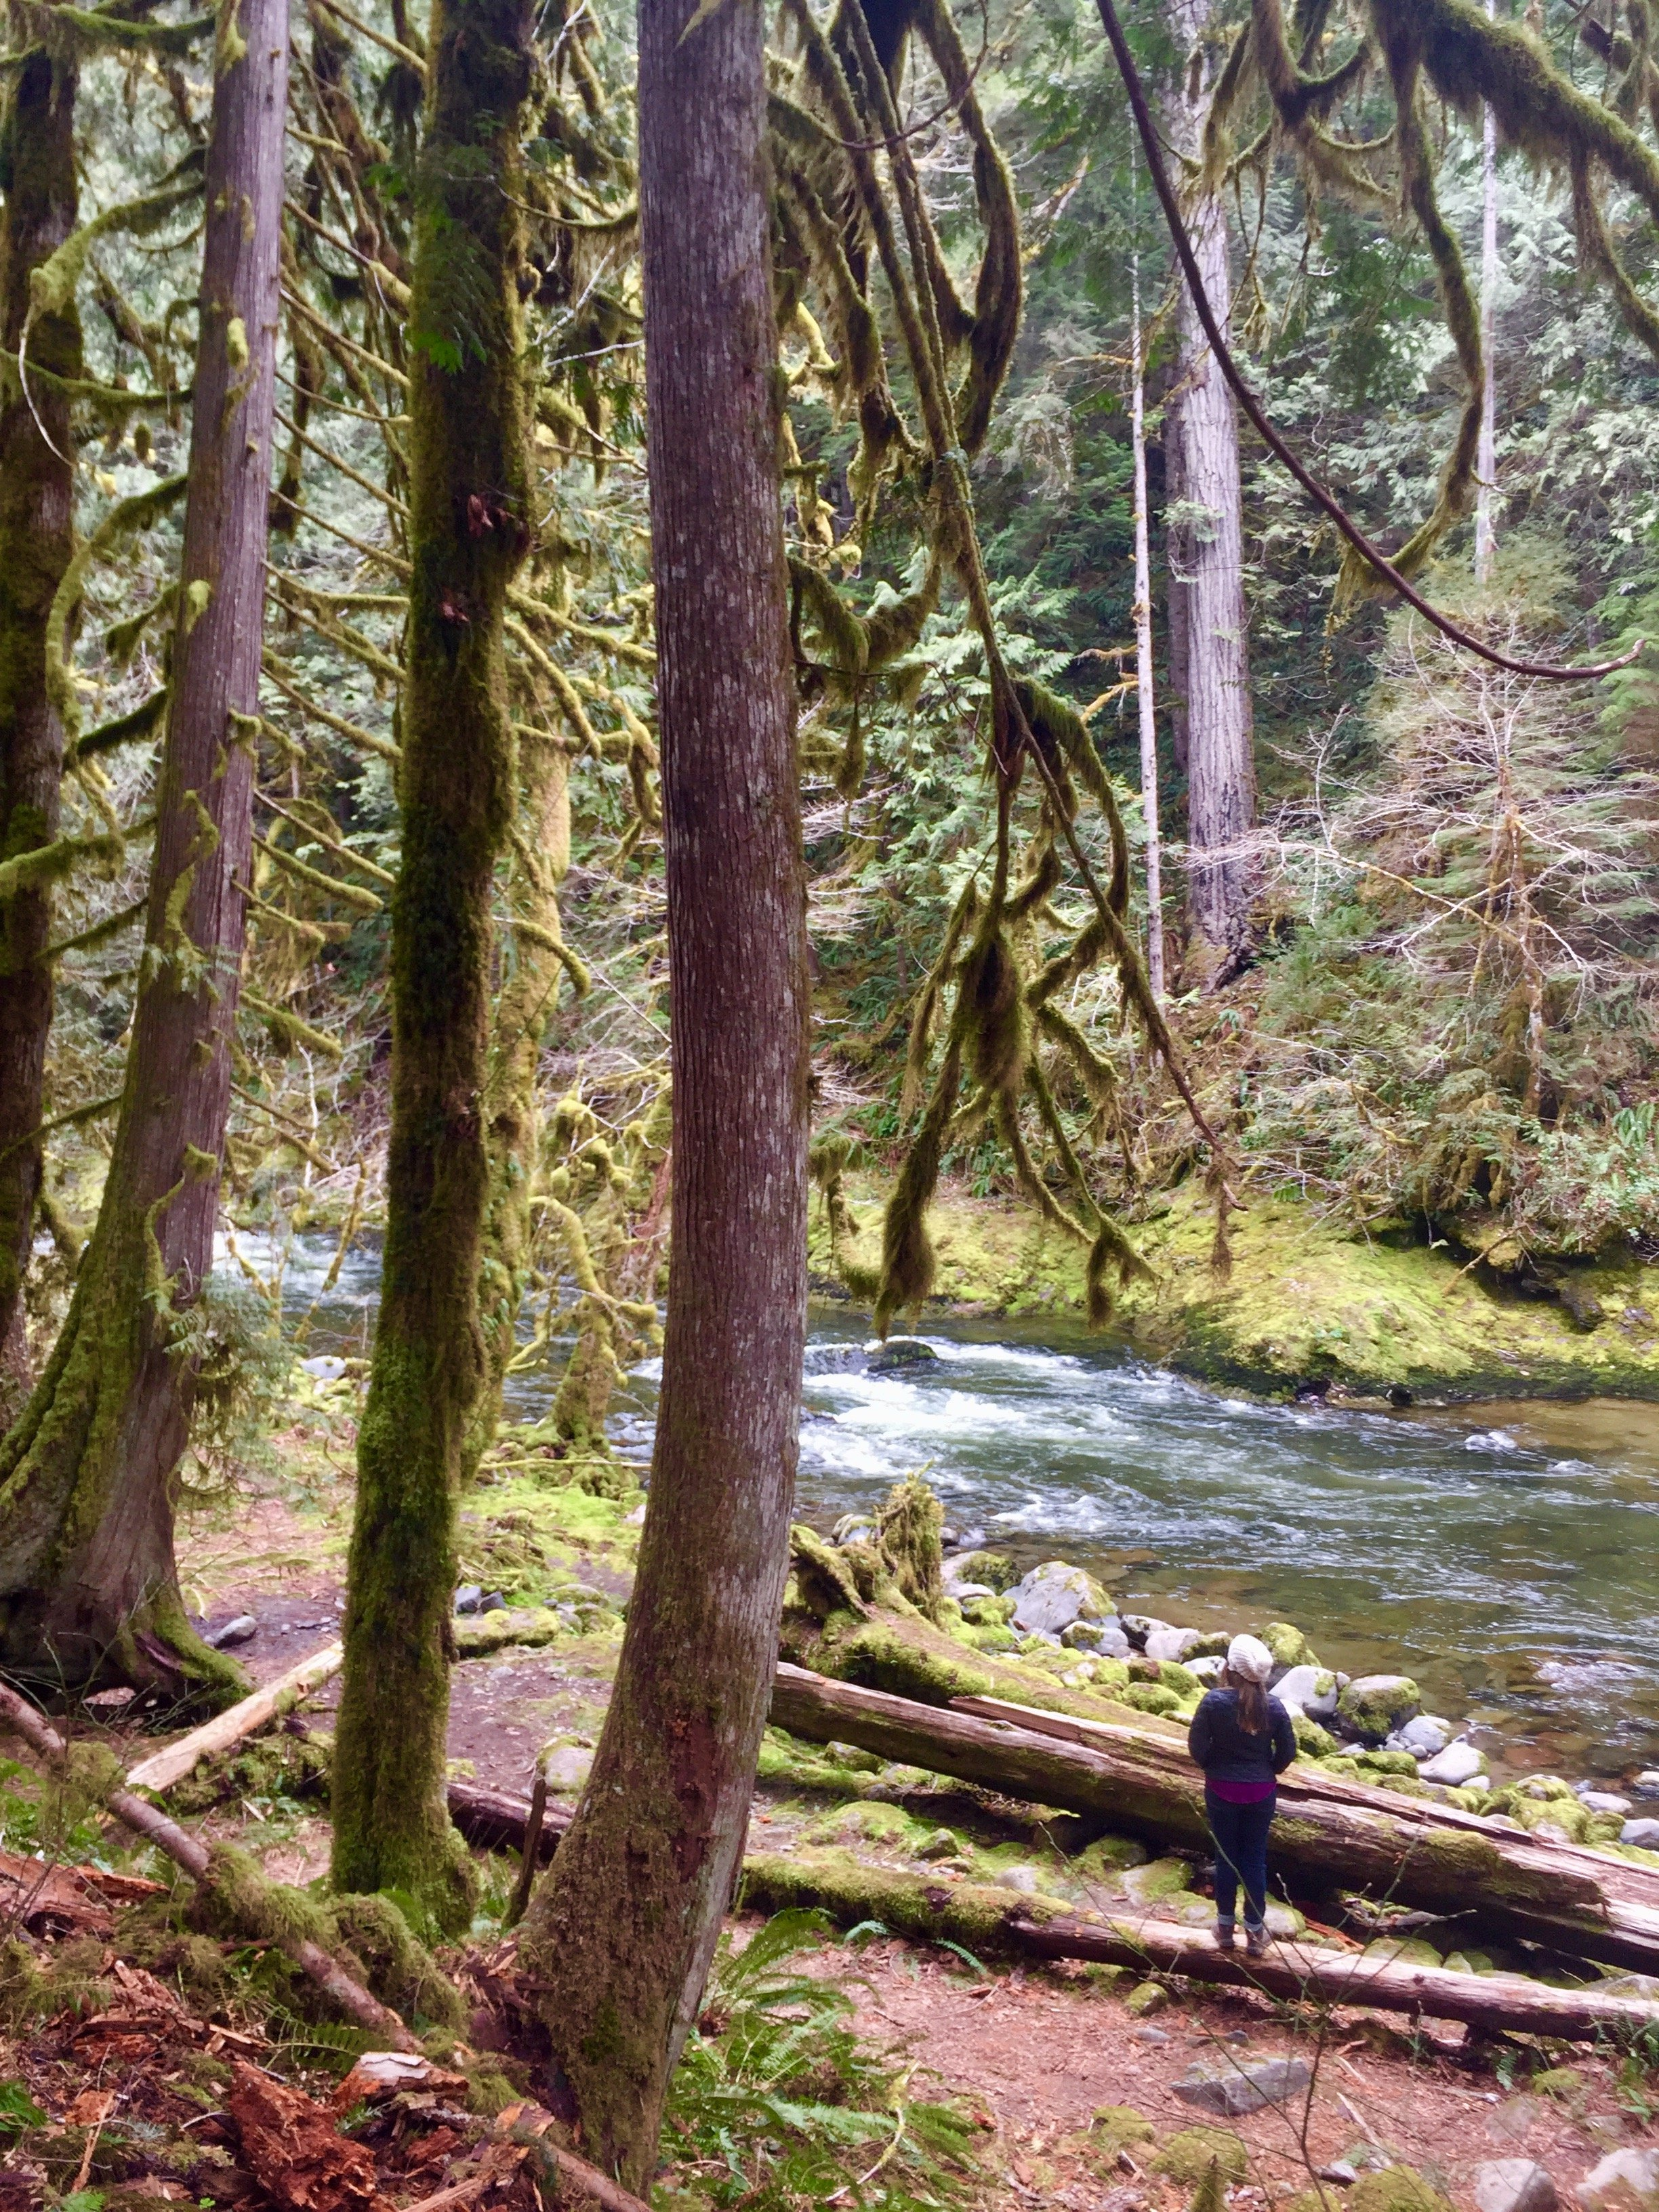 Hiking near Portland at Old Salmon River Trail